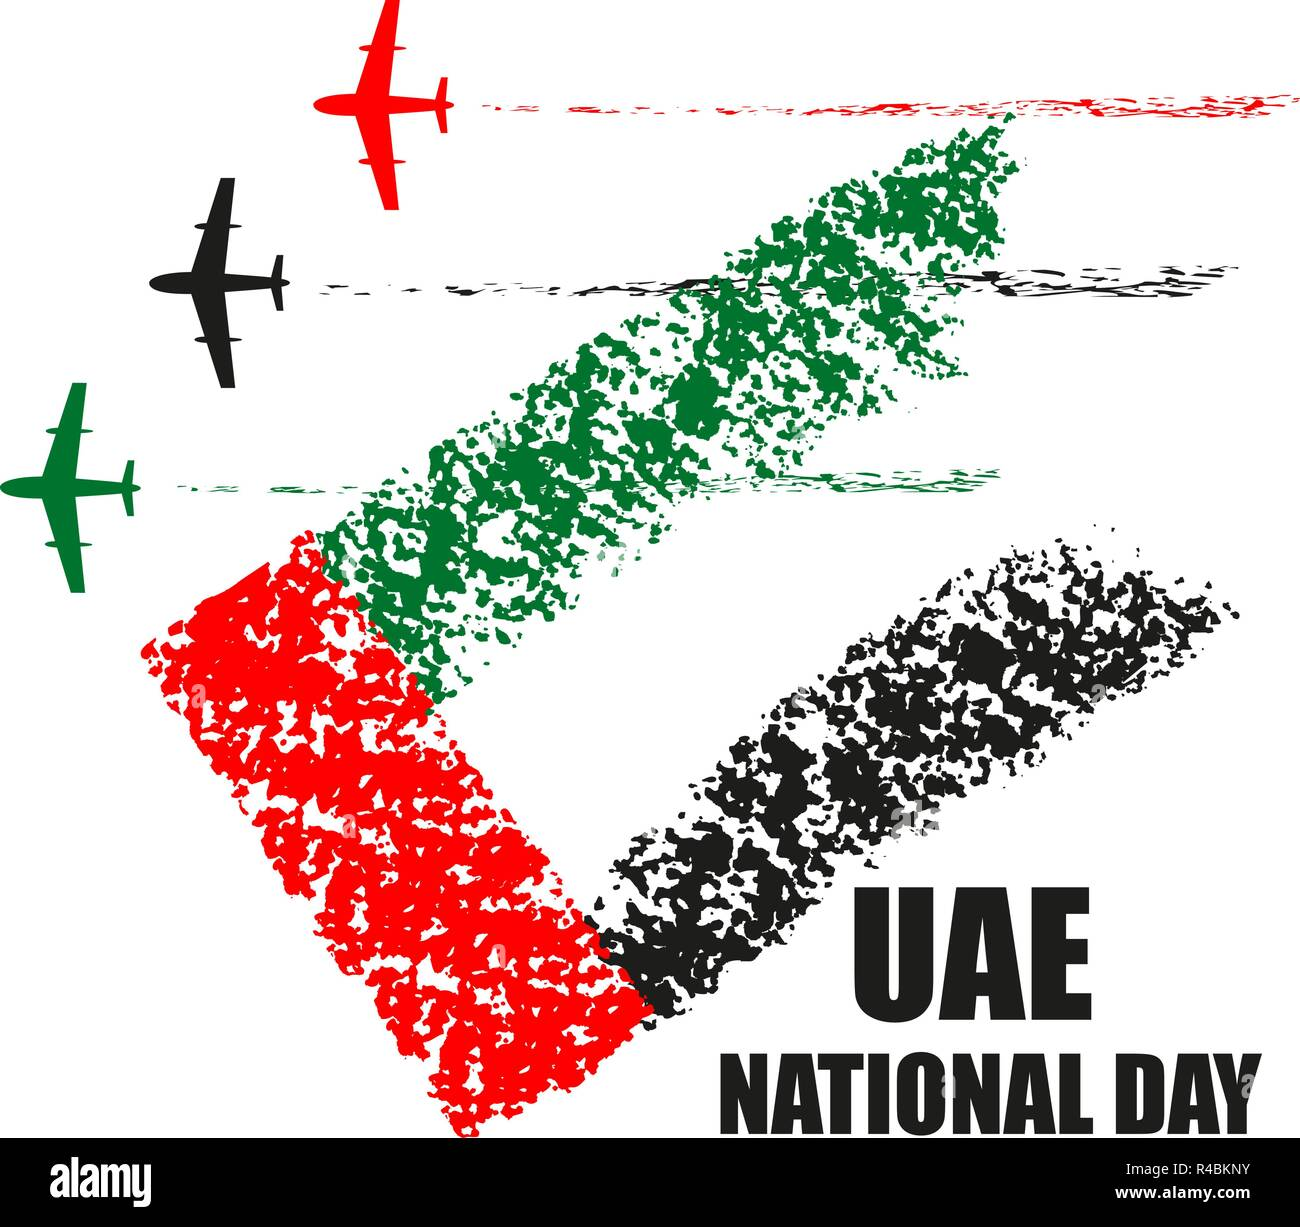 UAE National Day poster with planes performing aerobatics in national flag colors vector illustration. - Stock Image